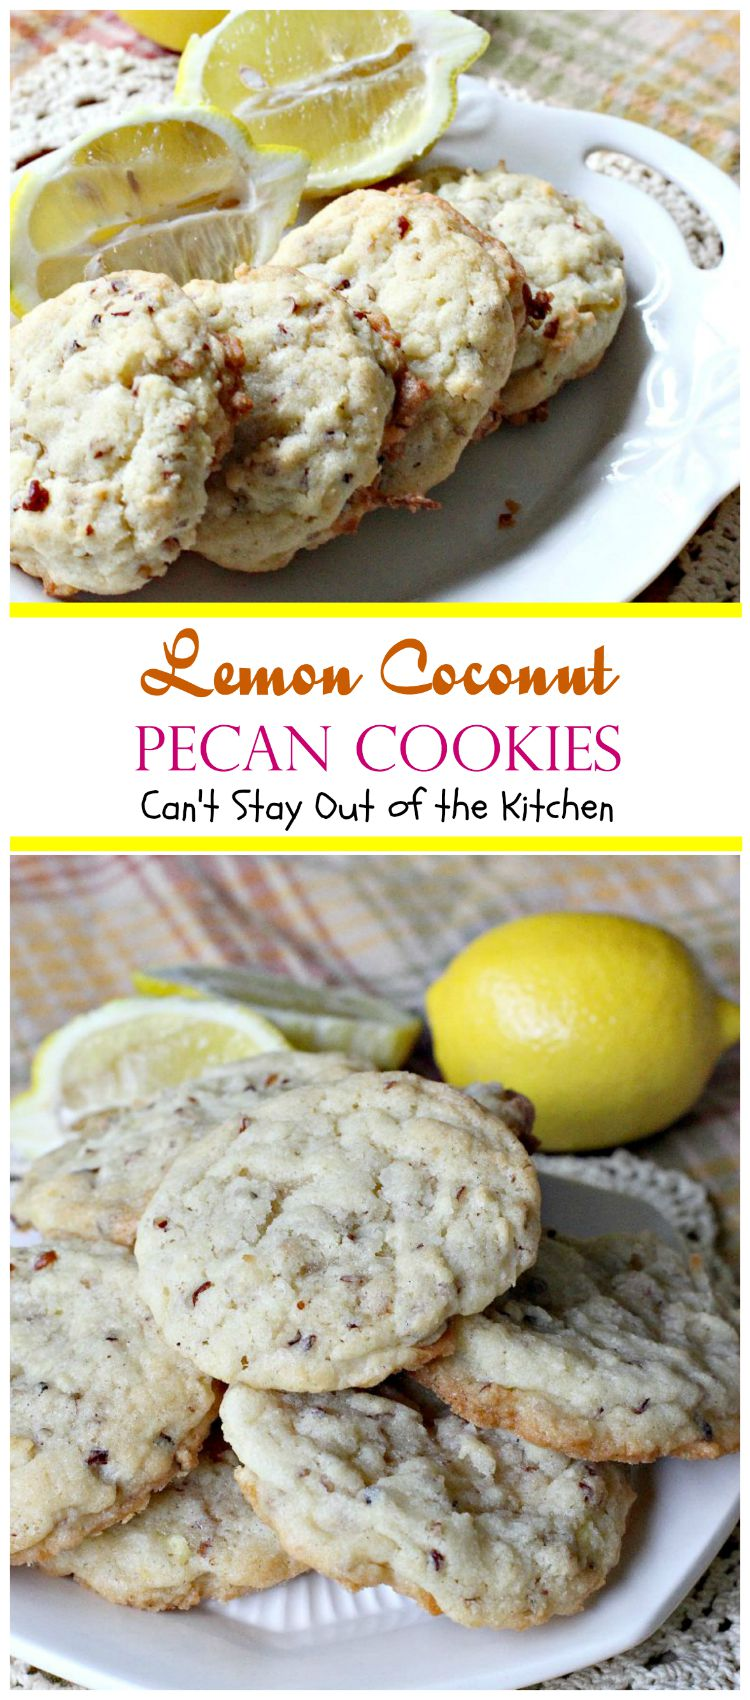 Lemon Coconut Pecan Cookies   Can't Stay Out of the Kitchen